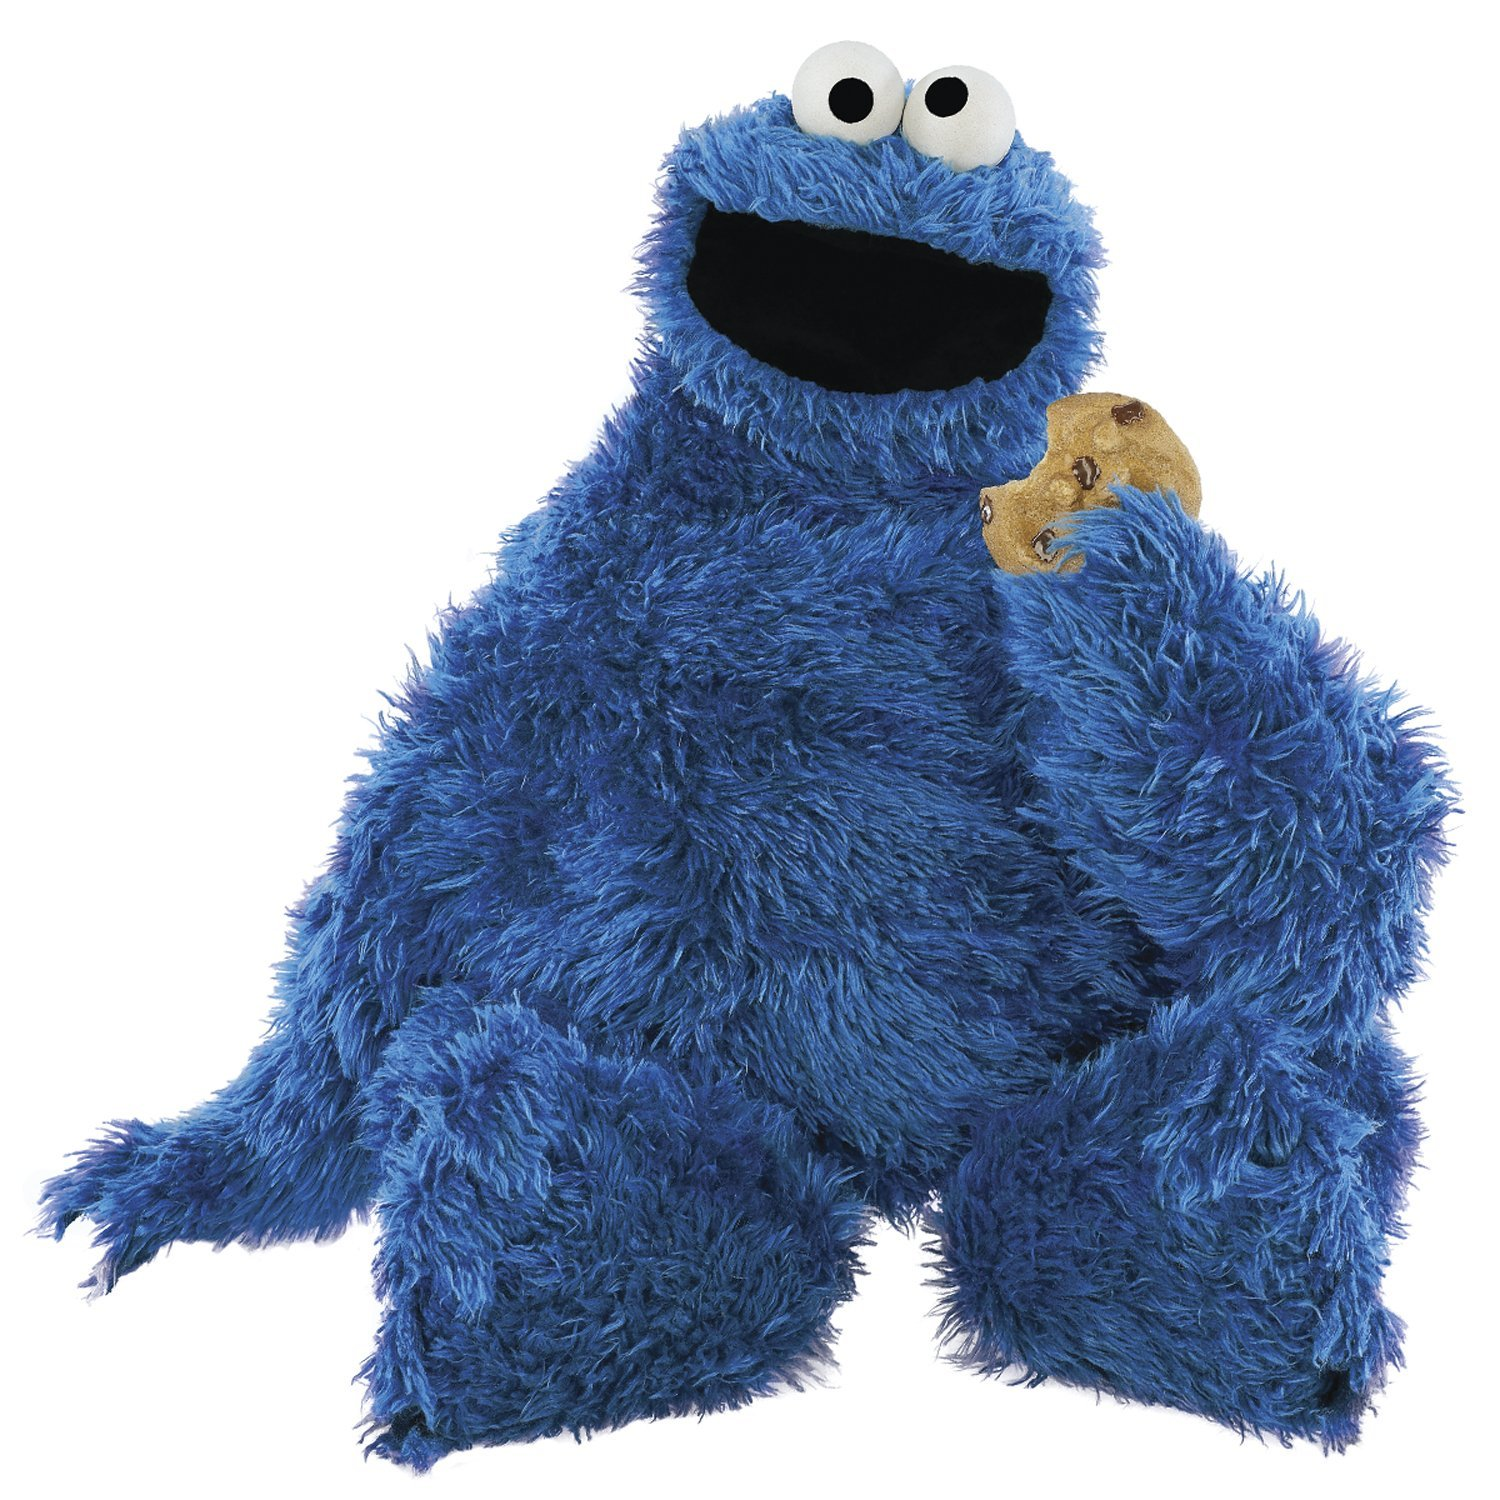 Cookie Monster PNG HD - 139250